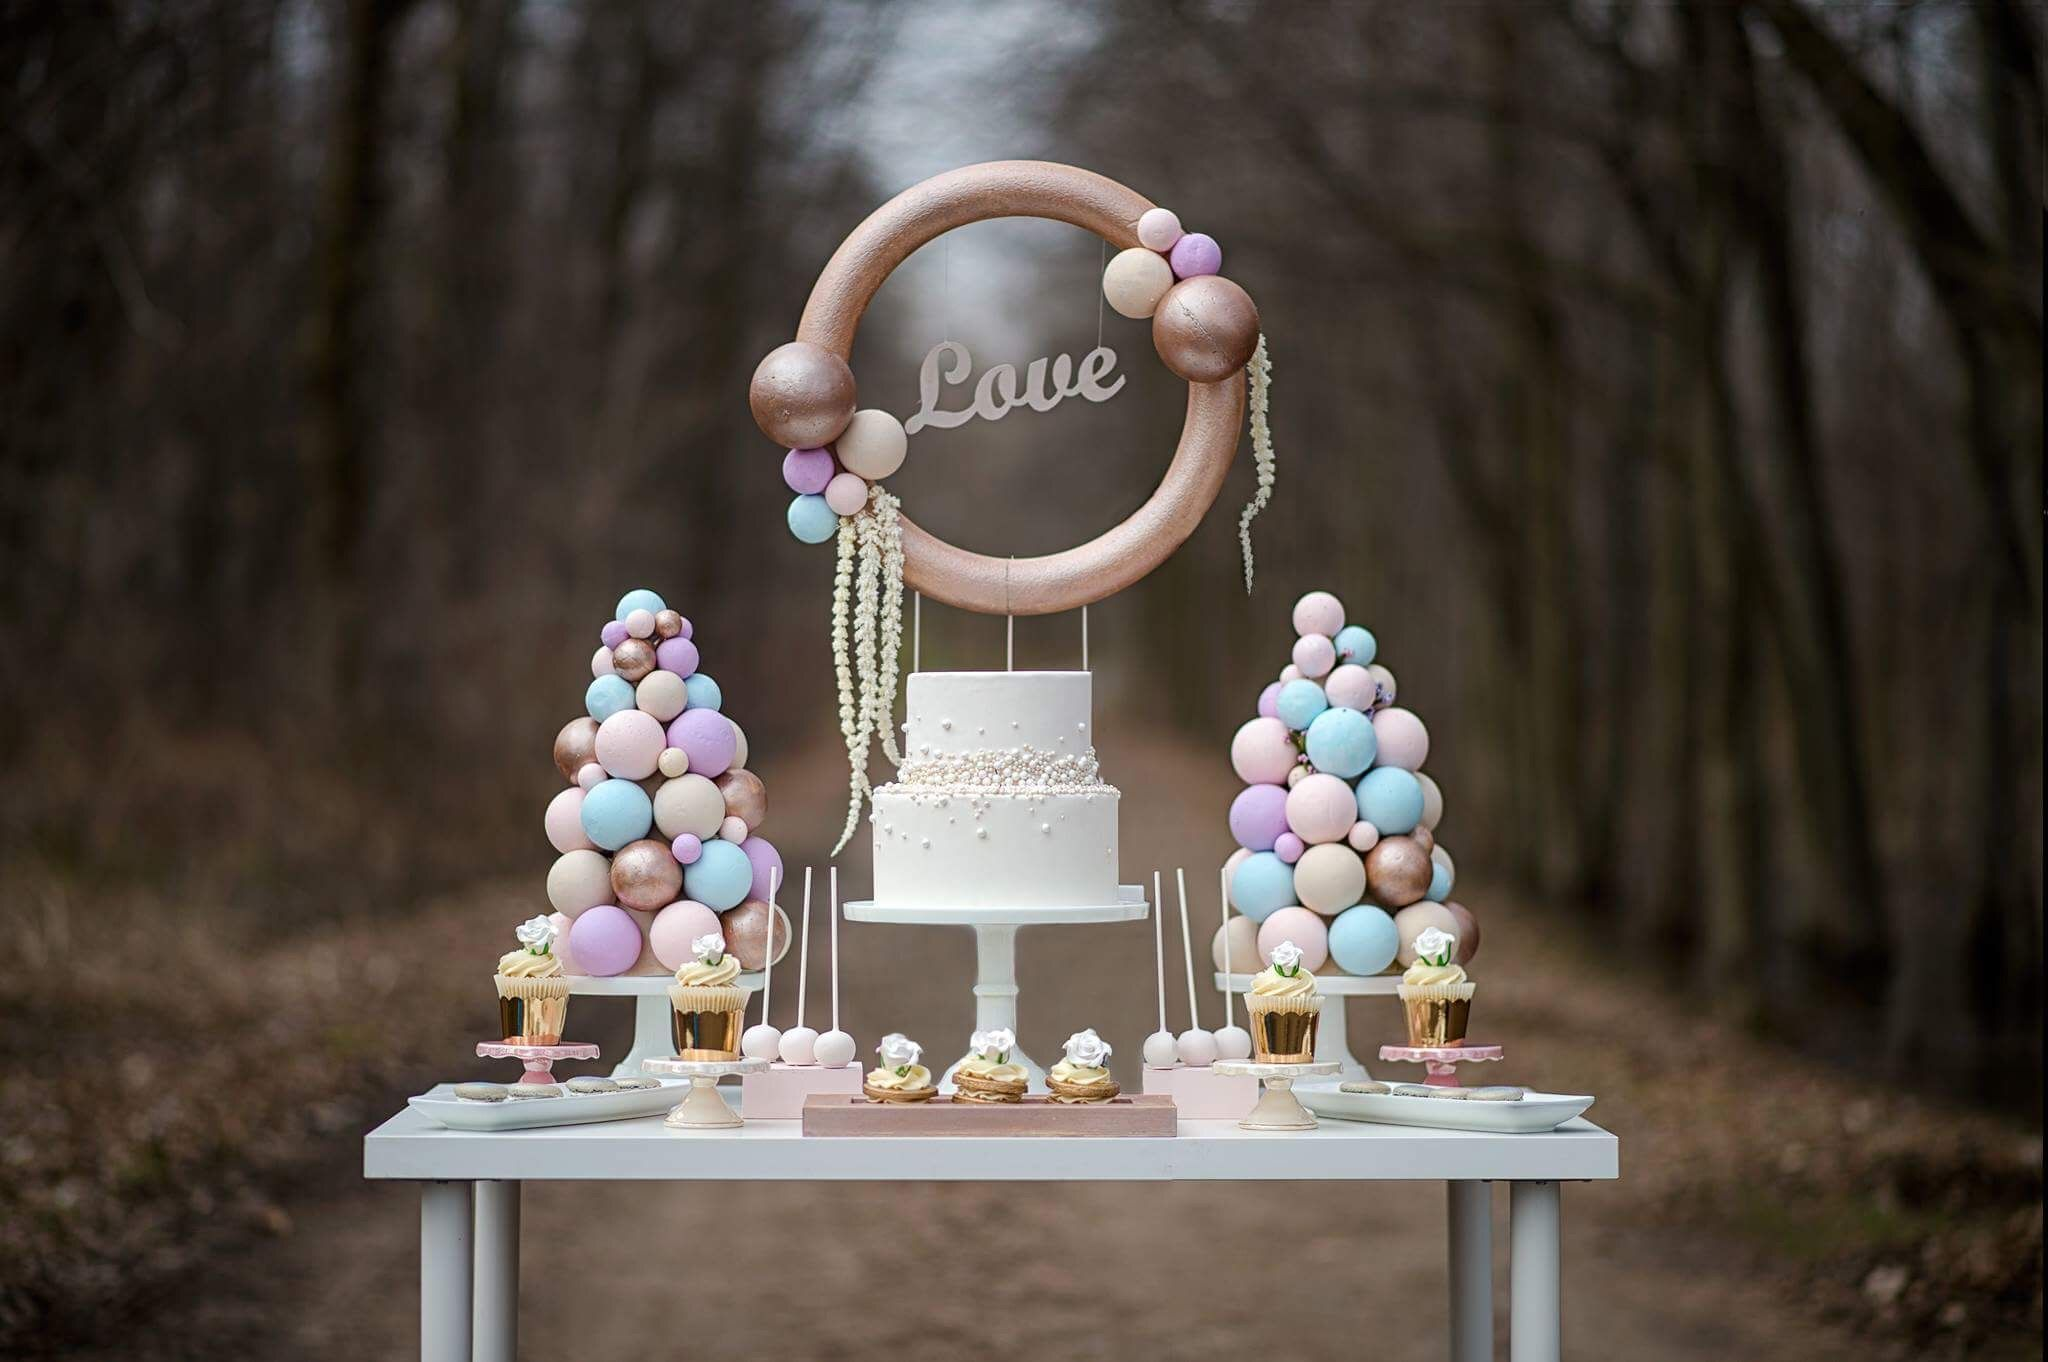 Pearl Inspired Sweet Table. Gorgeous Pastel colors and delicious Pearl styled desserts. Styling and Design by @laceandribbonsevents Sweets by @maychocolatetreats 📸 by @nfocusbydory